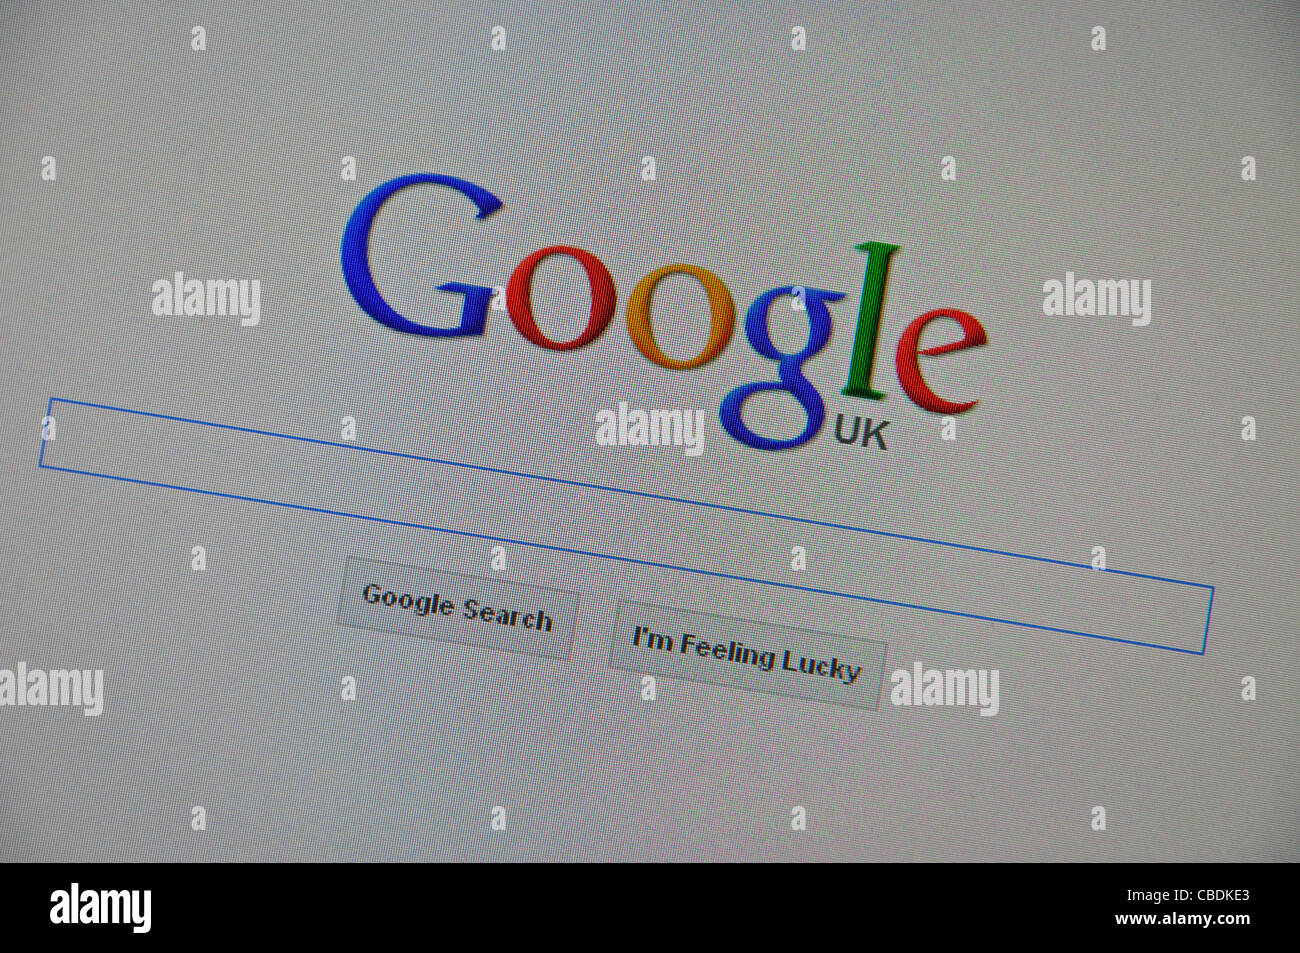 Google search page on computer screen, Greater London, England, United Kingdom - Stock Image